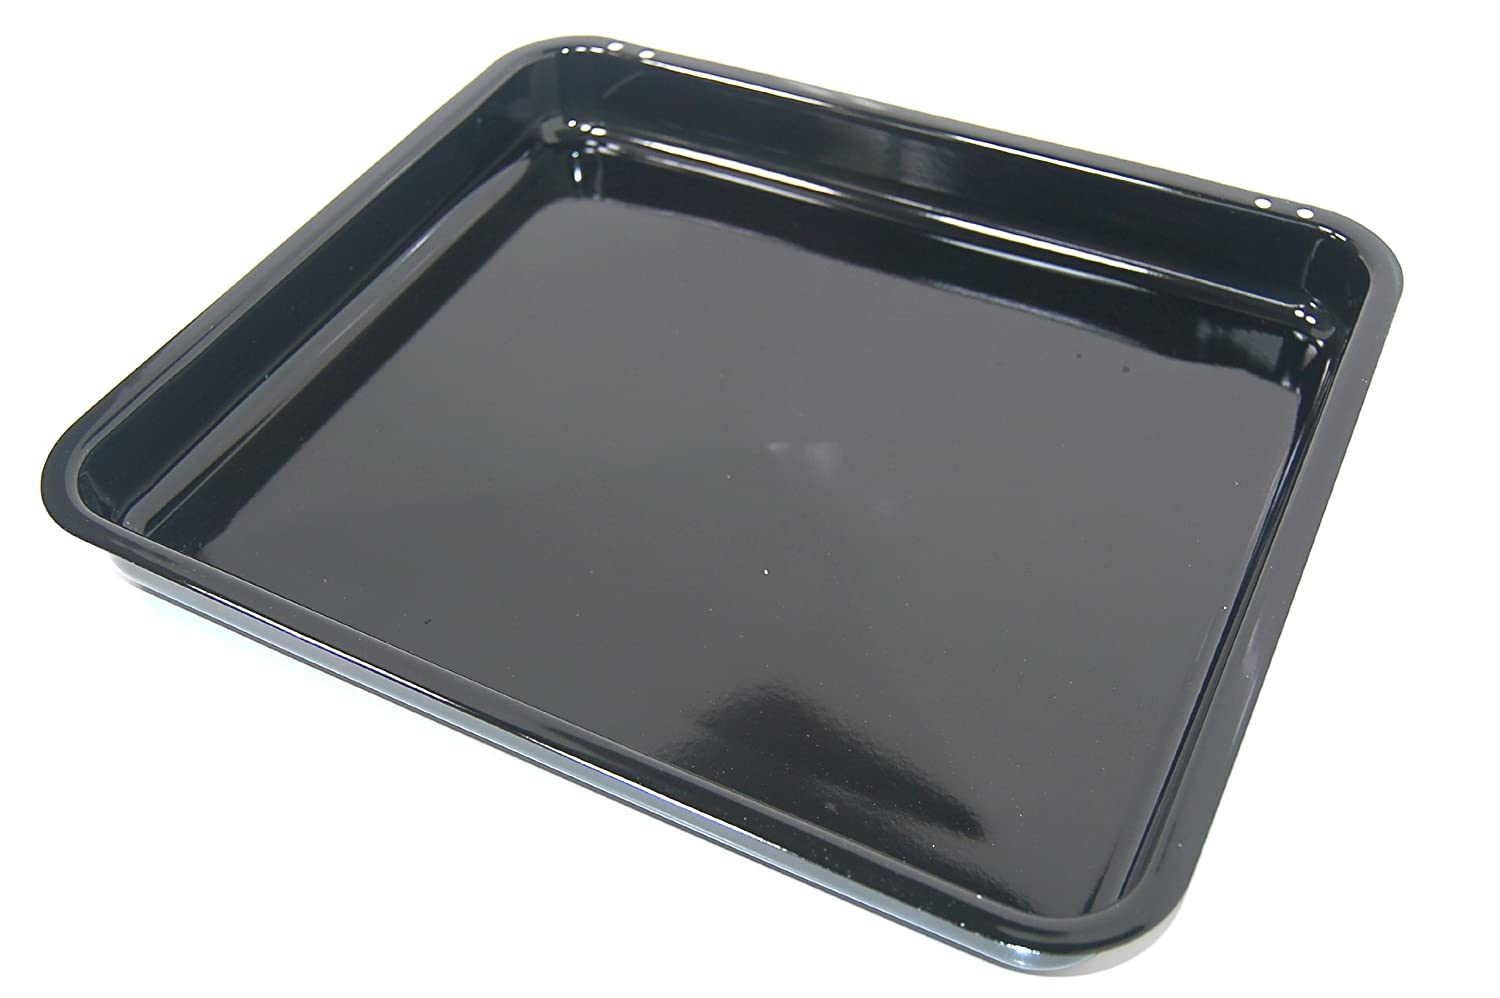 Cannon C00199570 Oven and Stove Accessory/Drip Pan/Hob Original Replacement for your oven/Baking Tray Meat This part/Accessory Suitable for different Brand